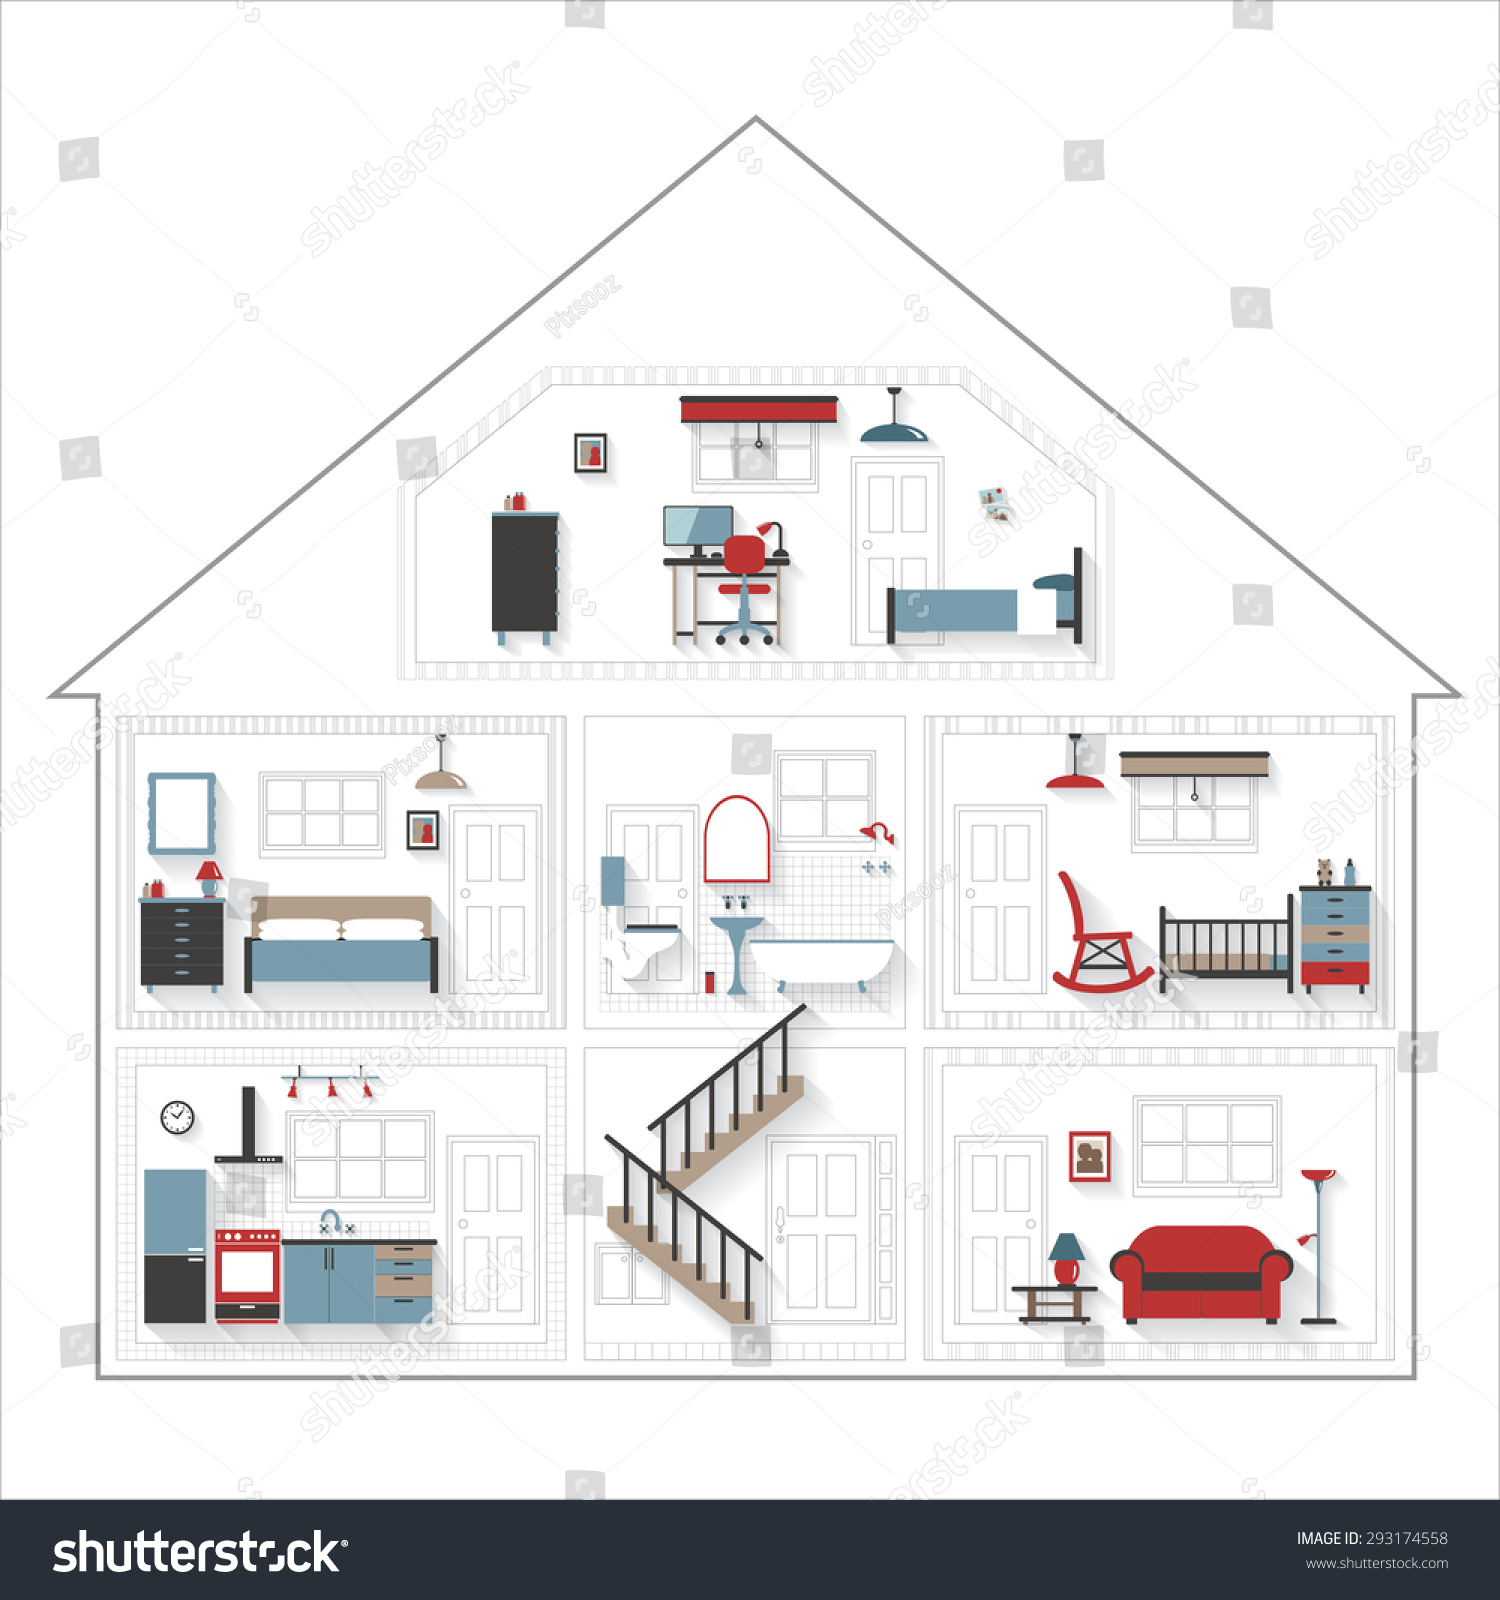 Sketch cutaway residential house furniture color stock photo photo sketch cutaway residential house with furniture in color rooms very detailed include furnishings grouped ccuart Image collections